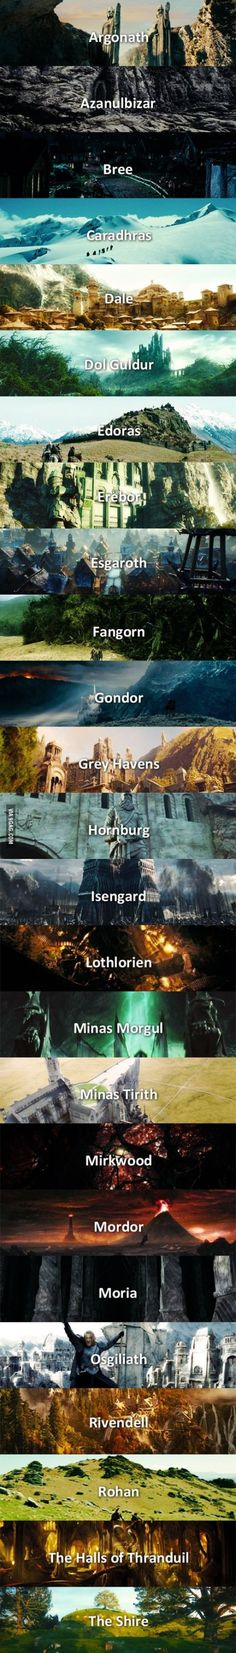 Middle Earth. I have to admit, Isengard is my favourite because it reminds me of Legolas' remix!